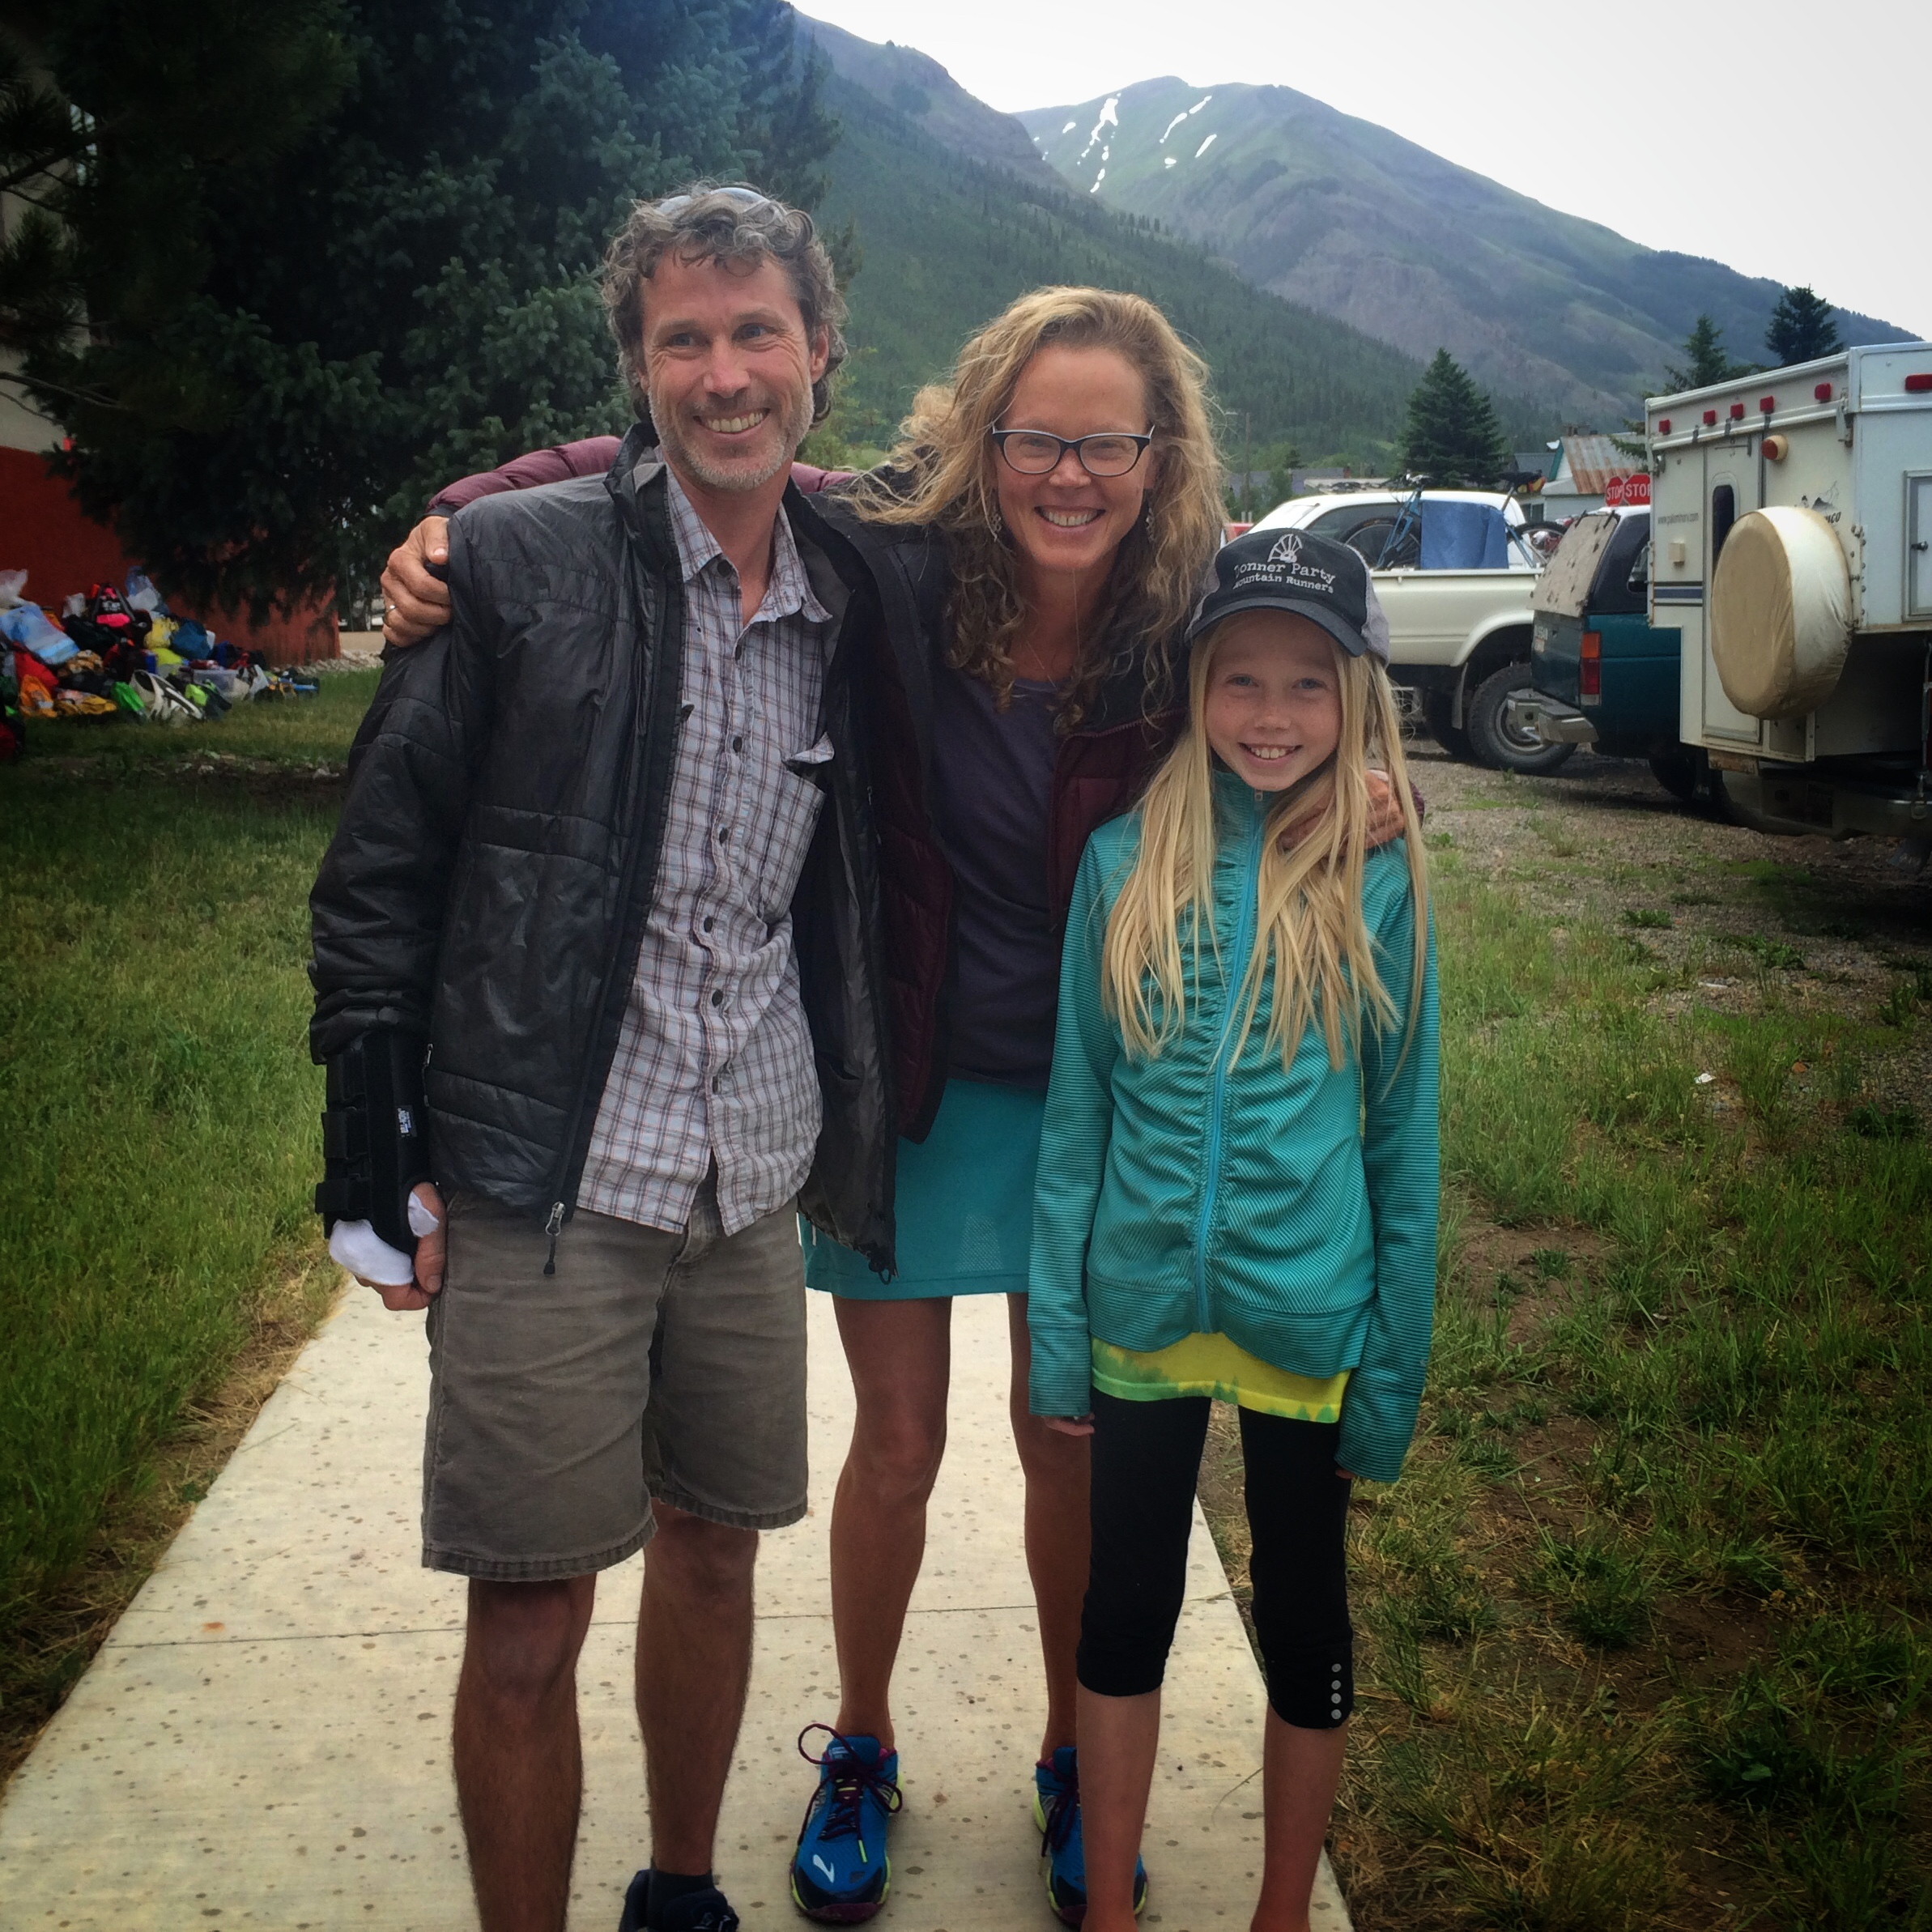 Paul, Betsy, and Lizzie at the 2015 Hardrock